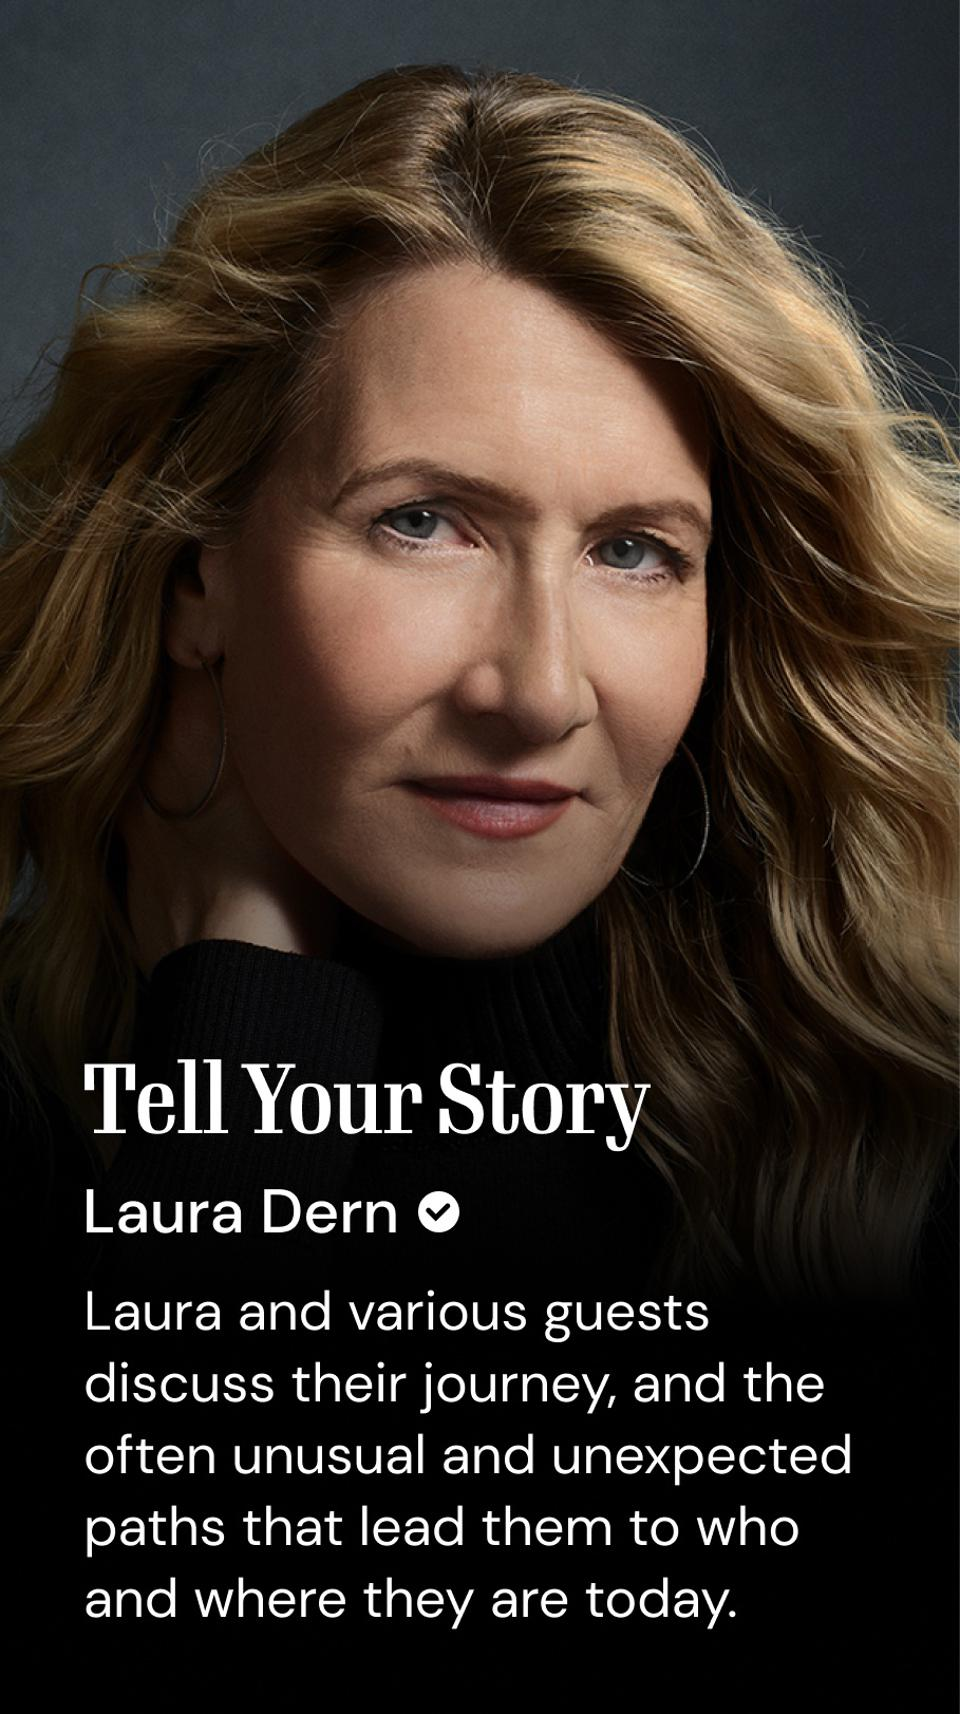 Tell Your Story online show featuring Laura Dern on Bright